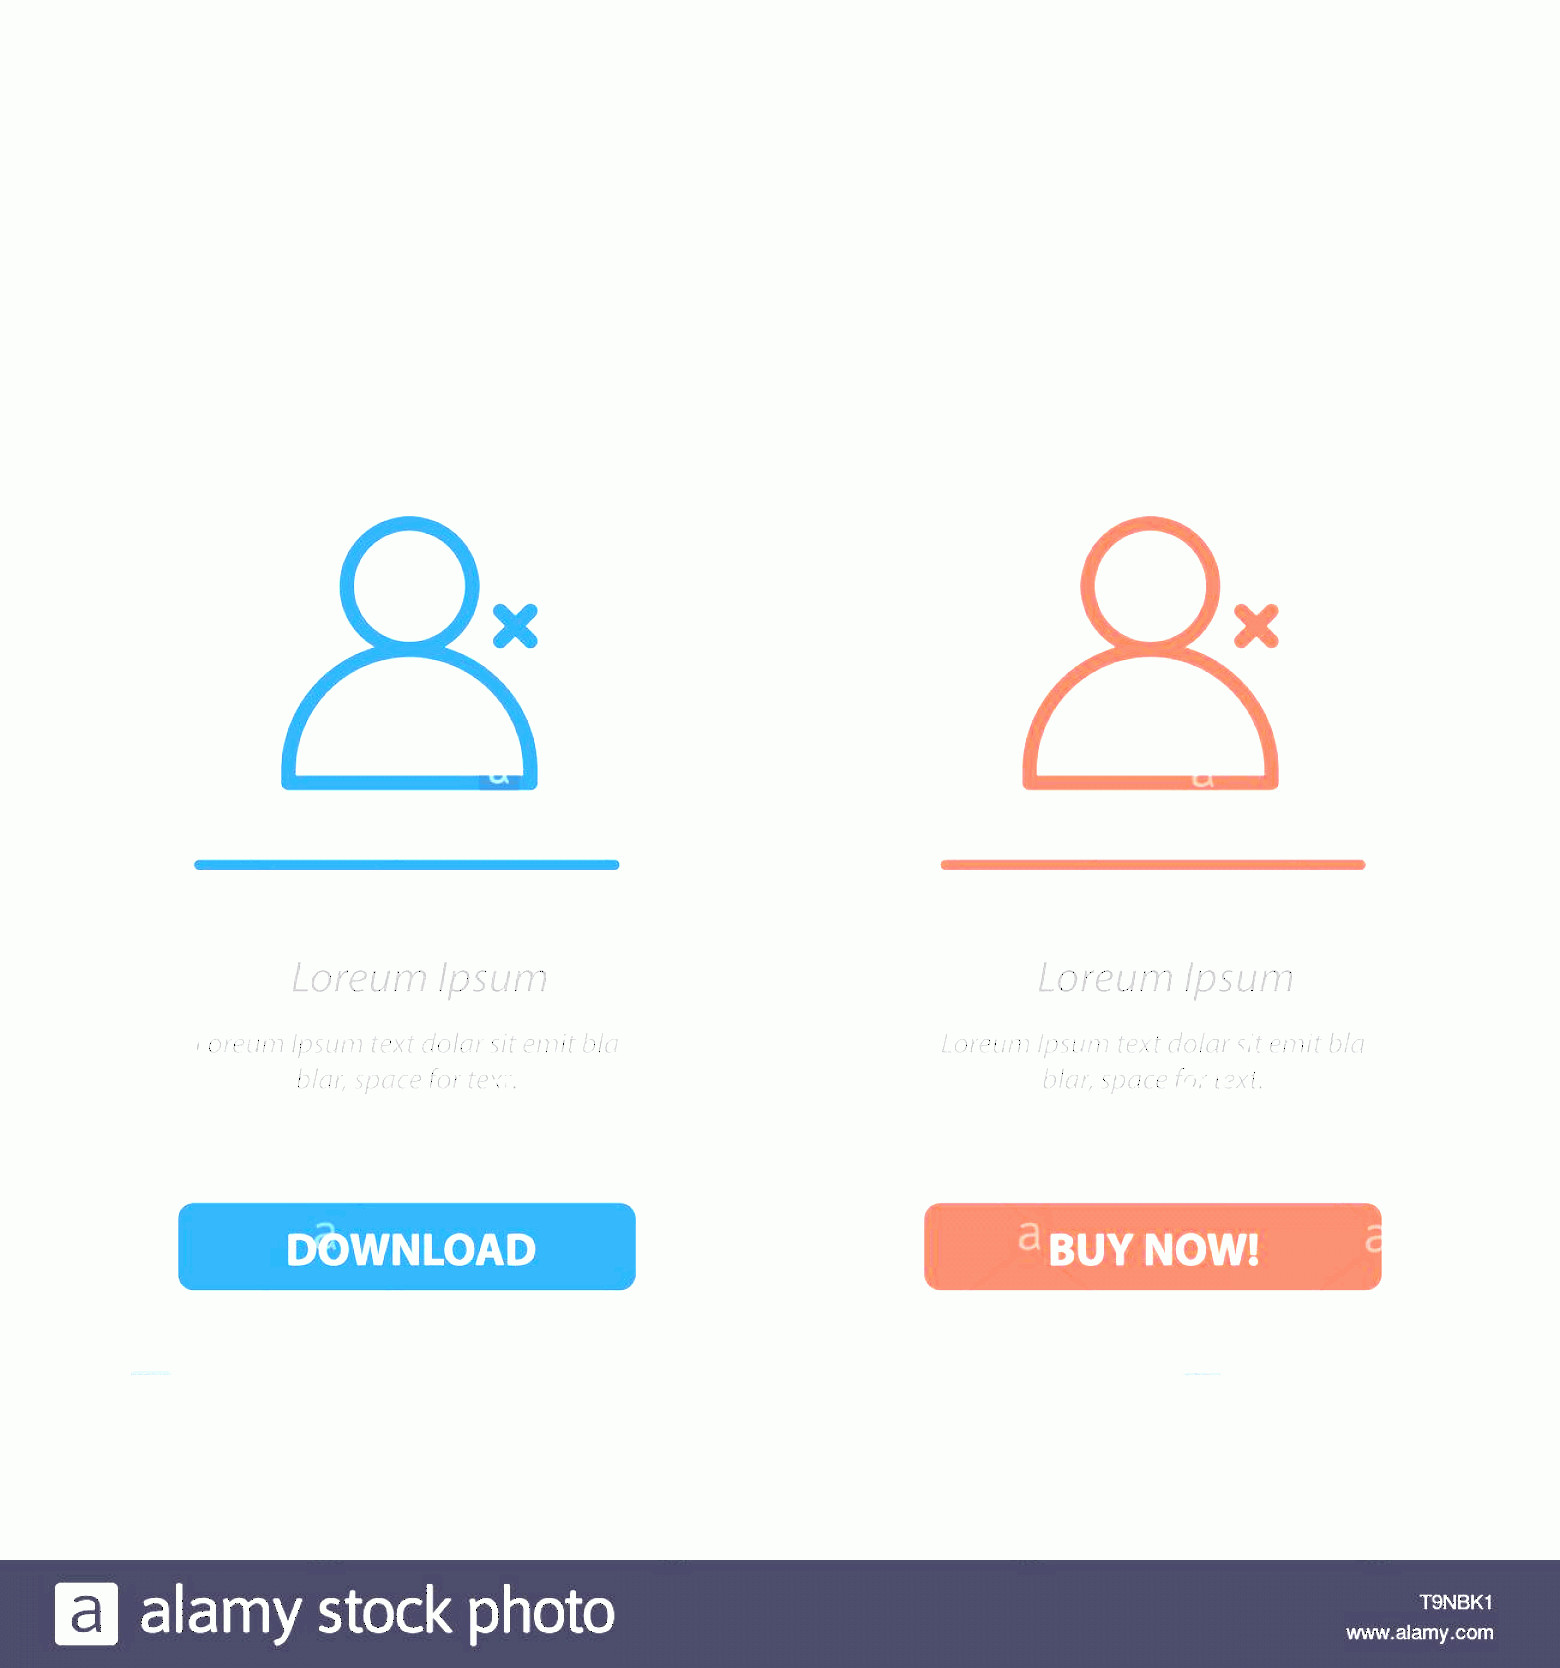 Discover Card Logo Vector: Discover People Twitter Sets Blue And Red Download And Buy Now Web Widget Card Template Image